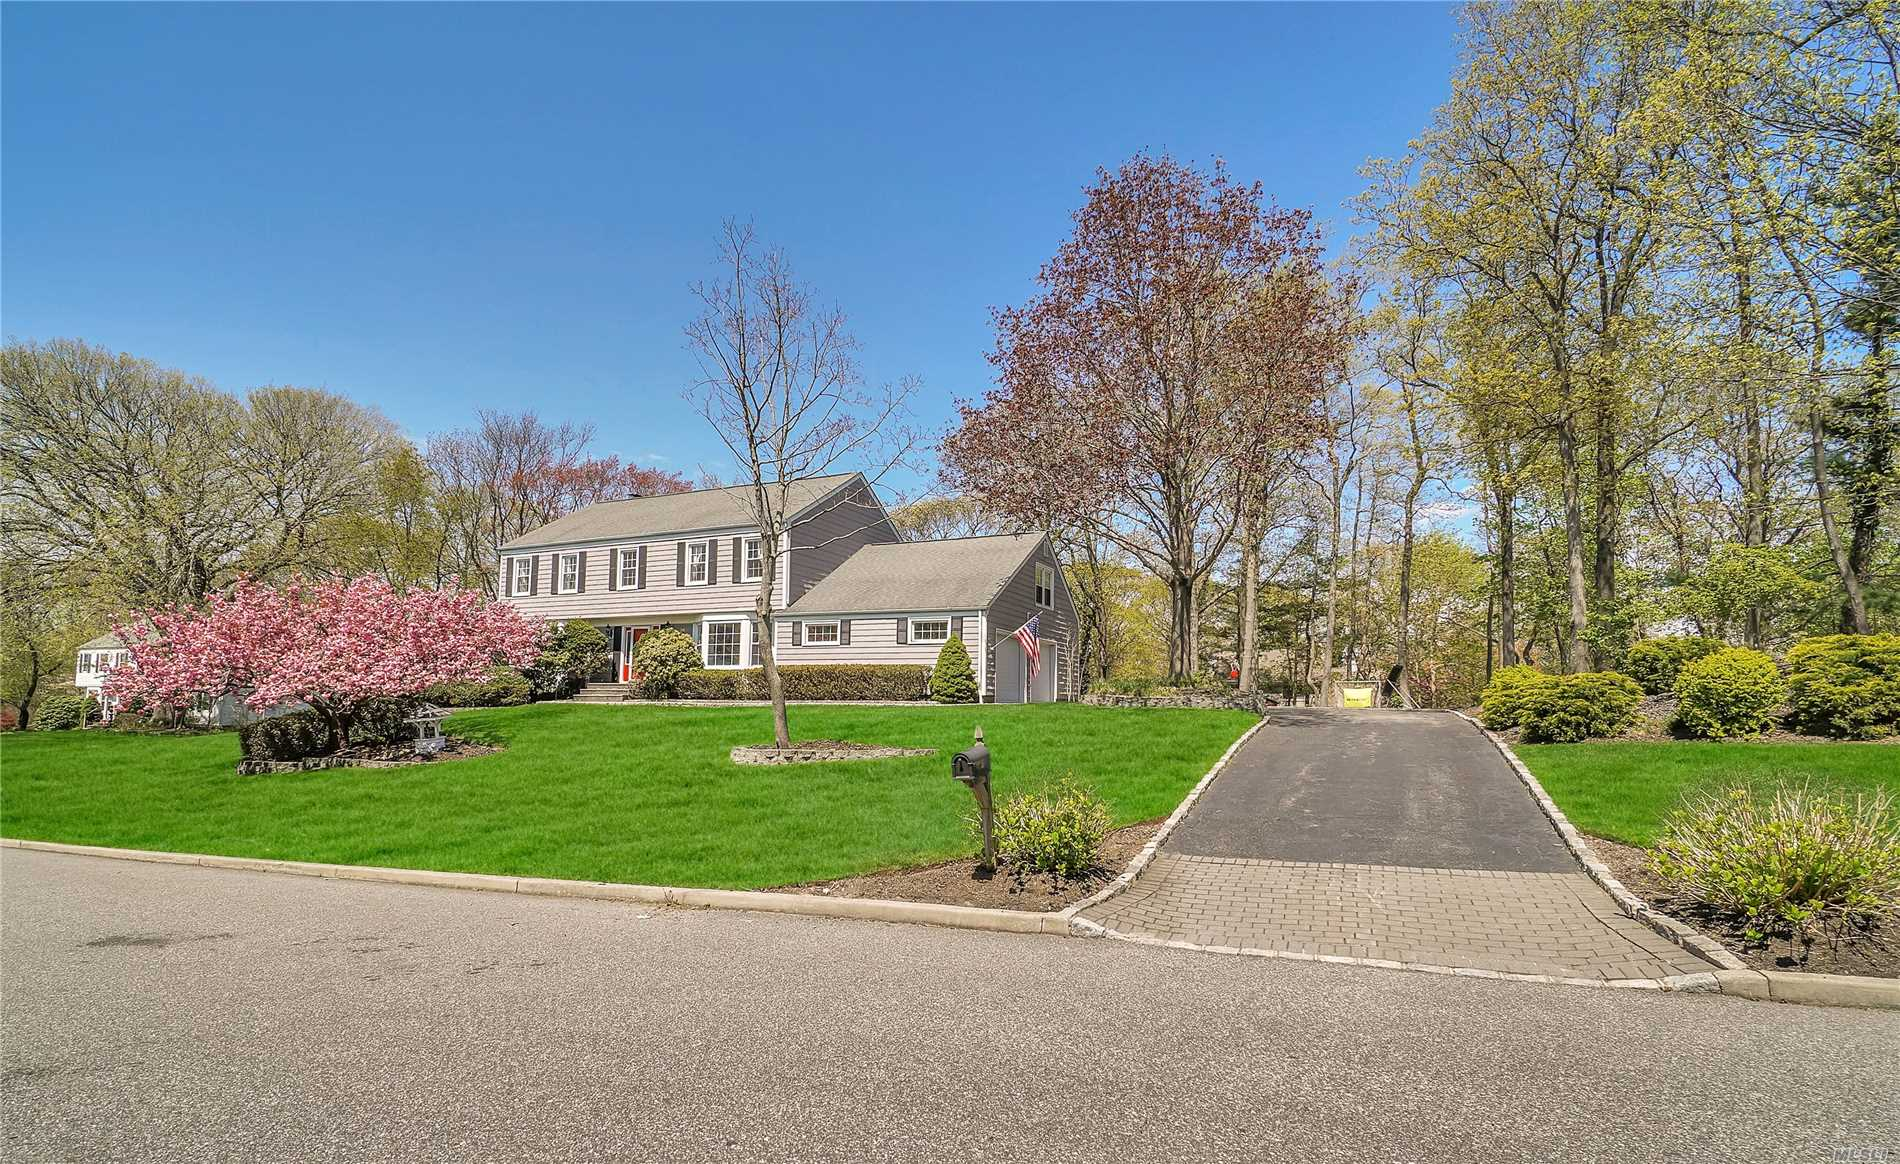 Gorgeous BILL HINES Built C.H.Colonial-Maple/Granite S.S Kitchen-Upgrades include:Brand new Lennox CAC system-Carrera marble master bath w/soaker tub/radiant heated floors-Expanded Master W.I.closet-2nd floor bath w/radiant heated floors/double sink-New 1st flr 1/2 bath-2nd floor laundry room-All hardwood flrs refinished-Custom crown/base molding and solid core doors throughout-Custom Saltwater Specht-tacular I.G Pool/Techo Bloc Steps/7 jets/4 returns-Pool house-Hunter 12 Zone sprinkler system